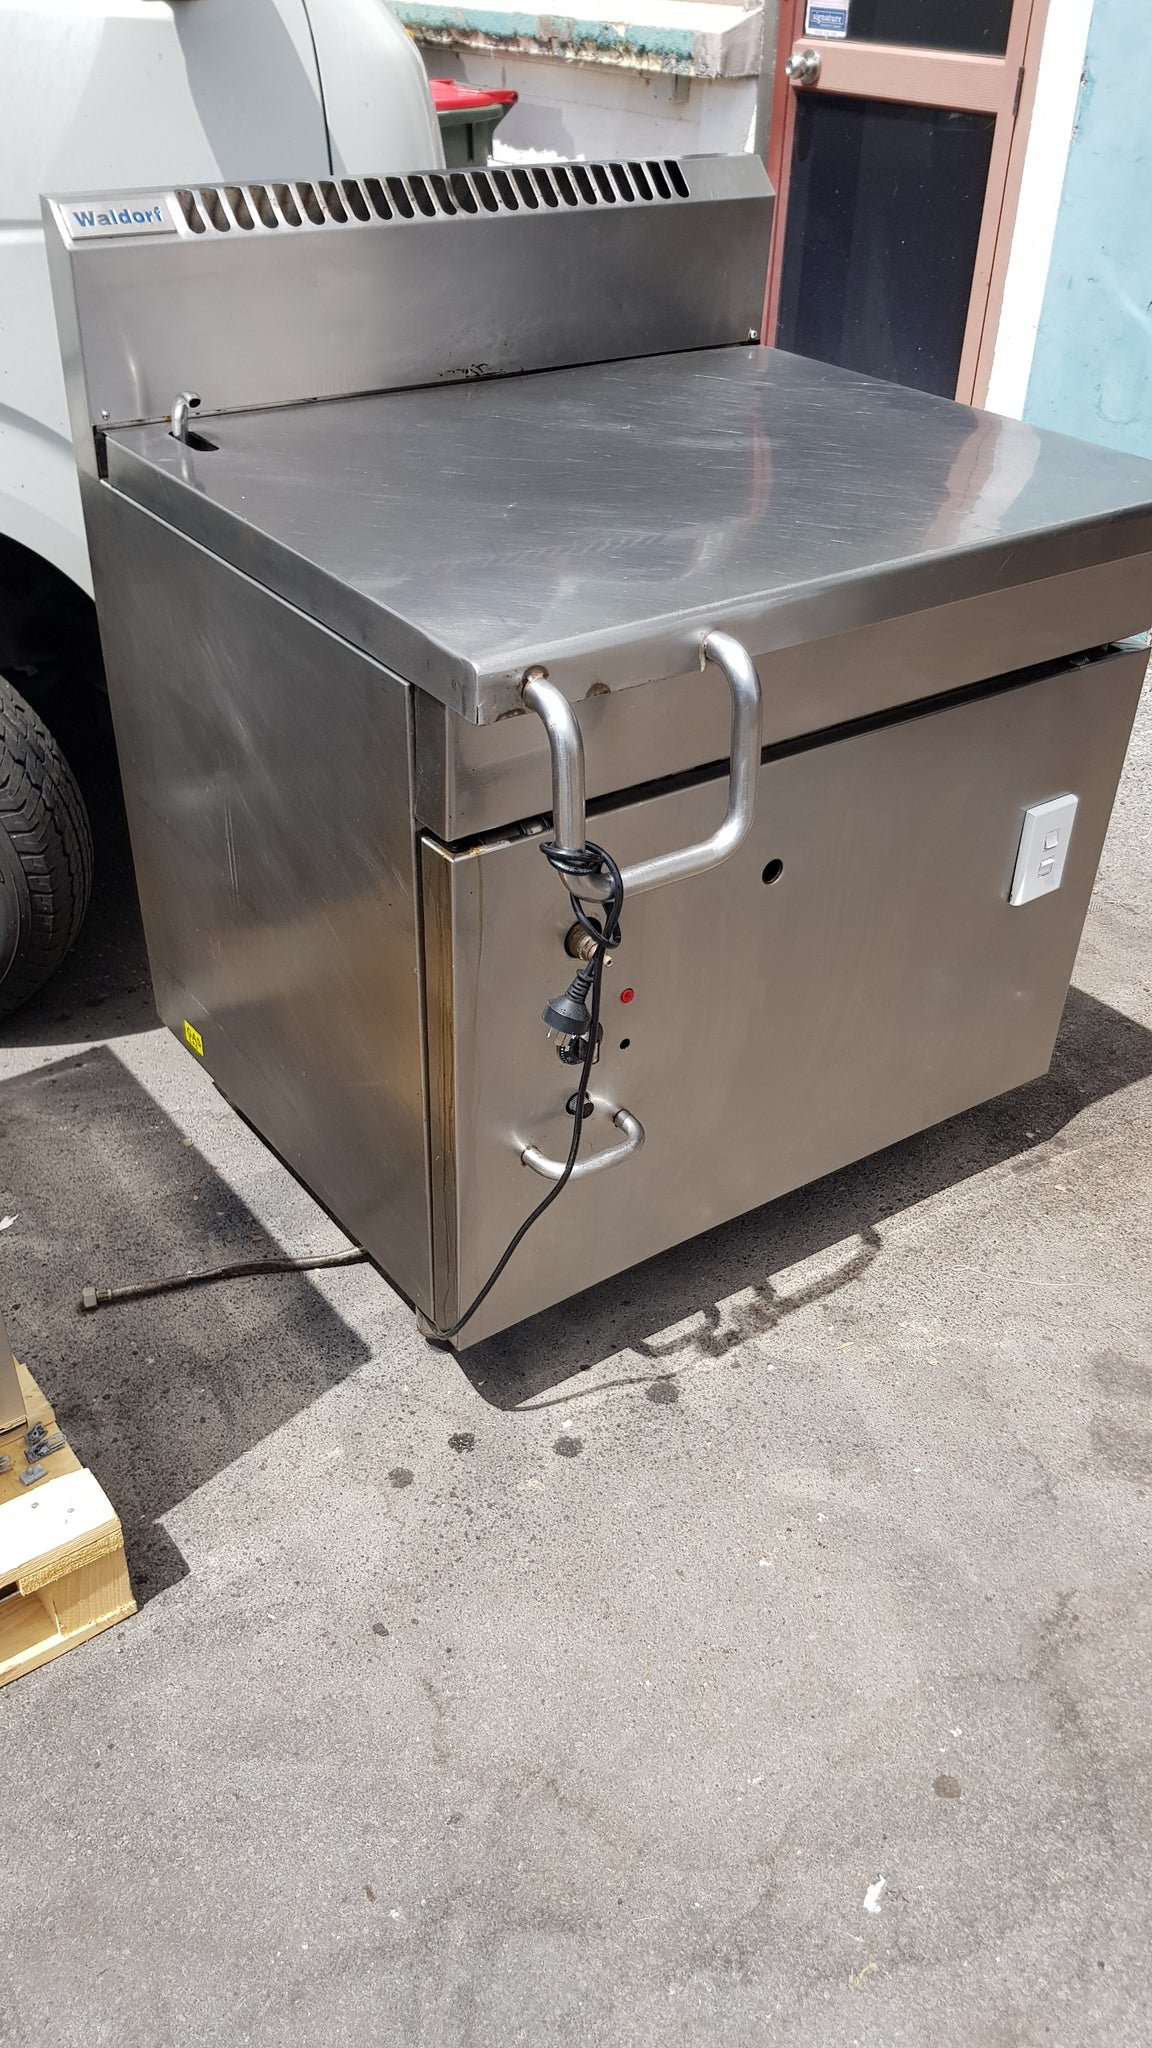 APS004 Walldorf 80 Leter Self tilting Brat pan LPG Gas - Washpro